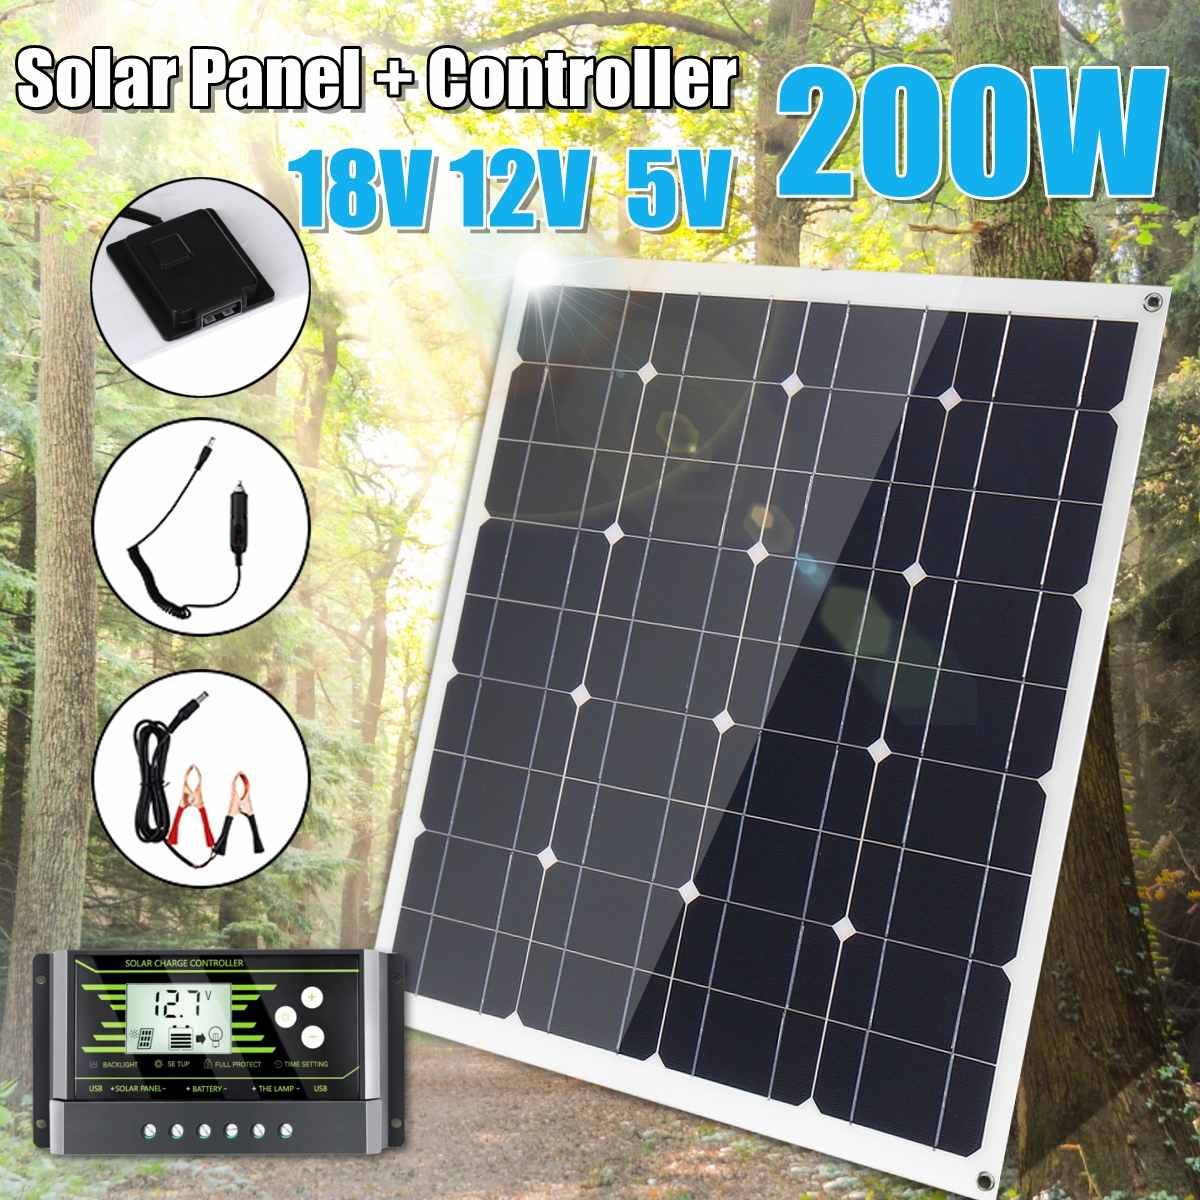 NEW <font><b>200W</b></font> <font><b>Solar</b></font> <font><b>Panel</b></font> 18V 5V Flexible MonoCrystalline Silicon With 10/20/30A Controller for Outdoor <font><b>Solar</b></font> Battery image